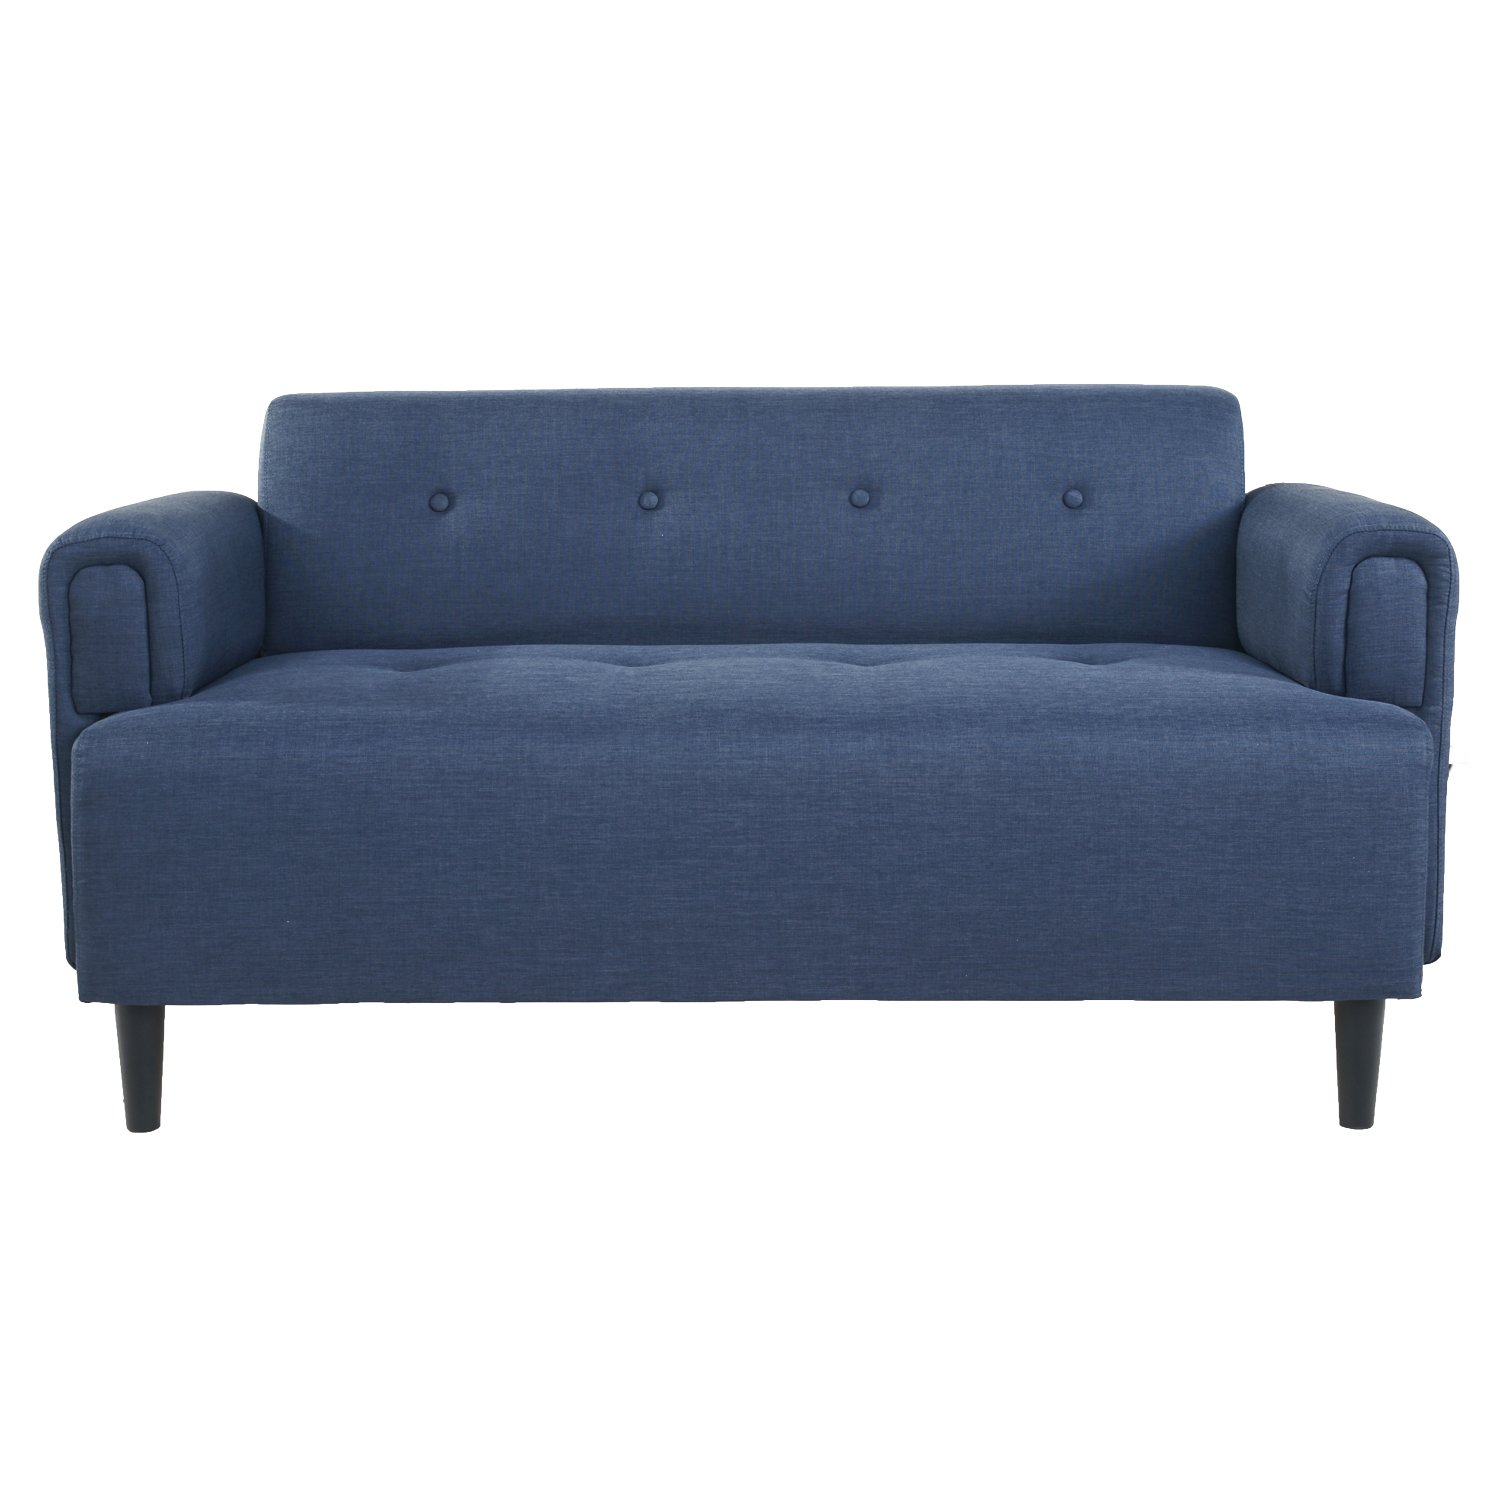 Adeco Fabric Sofa (Navy Blue)